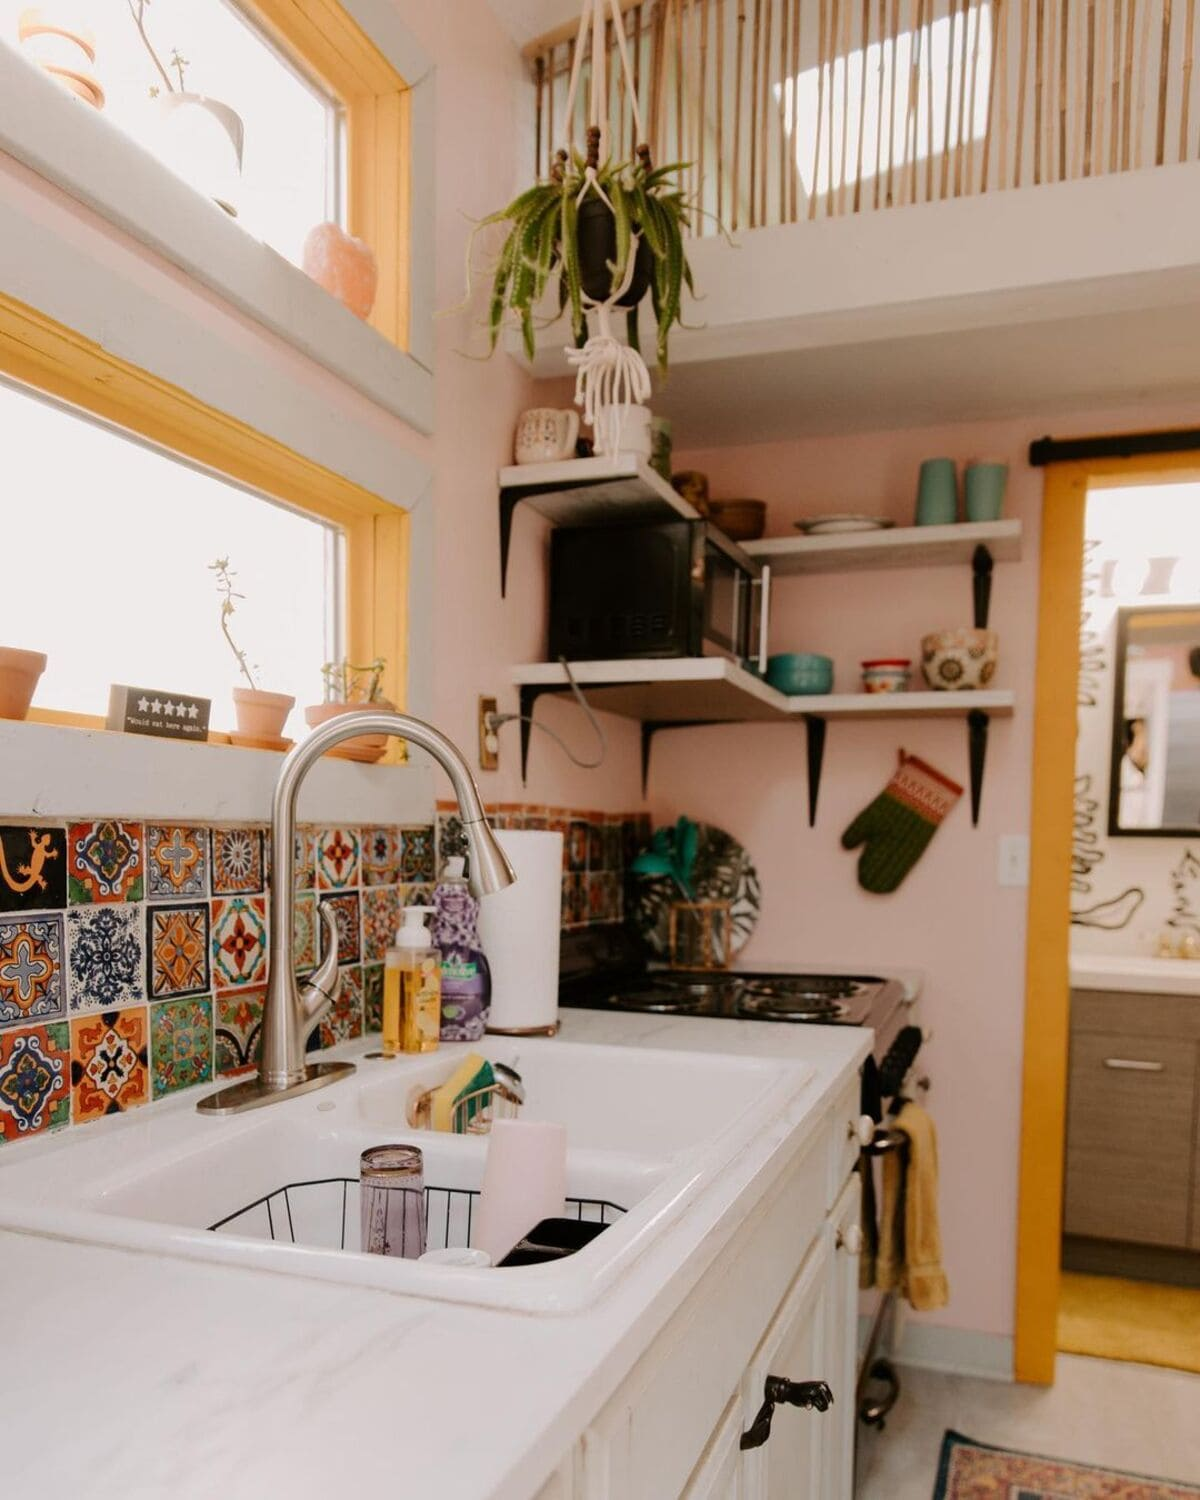 tiny house 4 1 - Tropical tiny house offers visitors a creative getaway